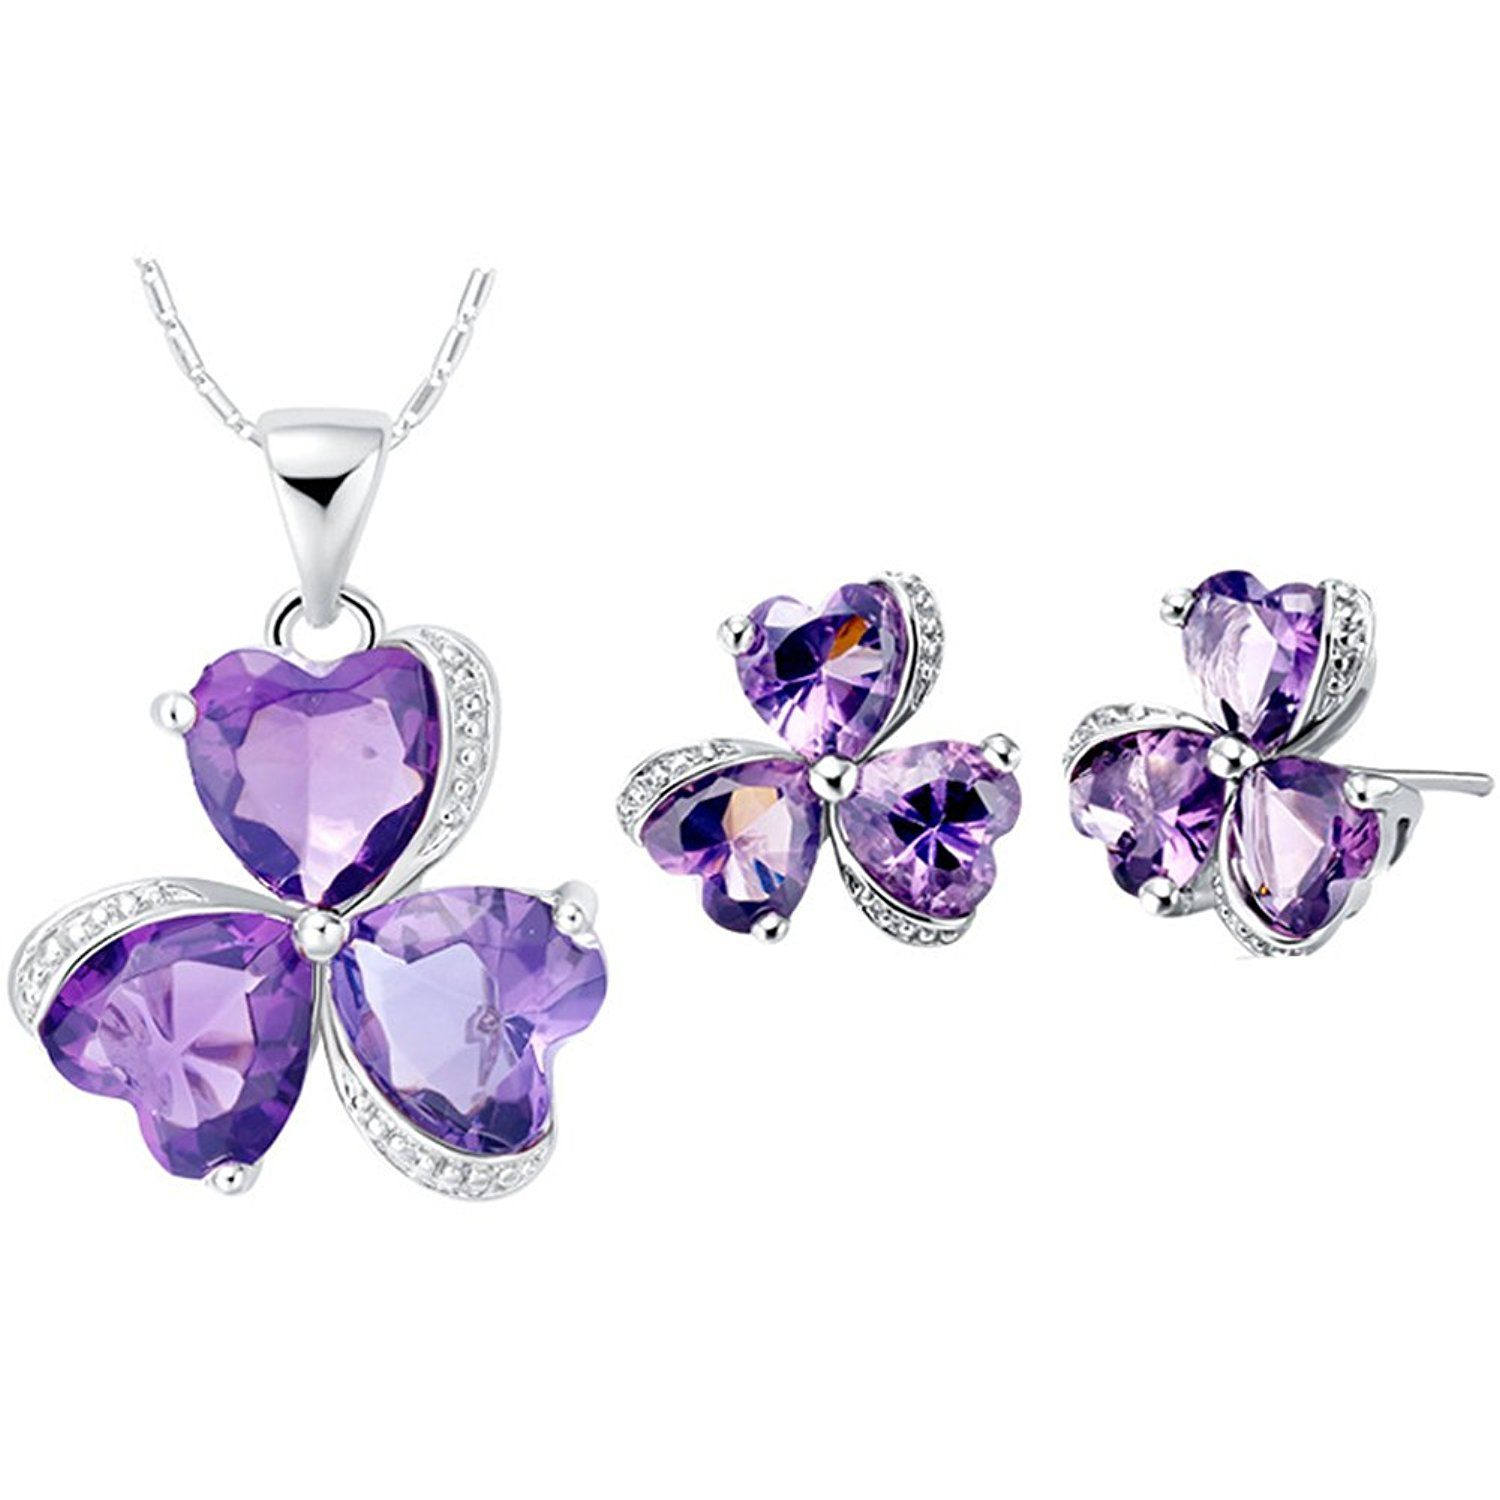 Jewelry sets layla white gold plated crystal bridal pendant